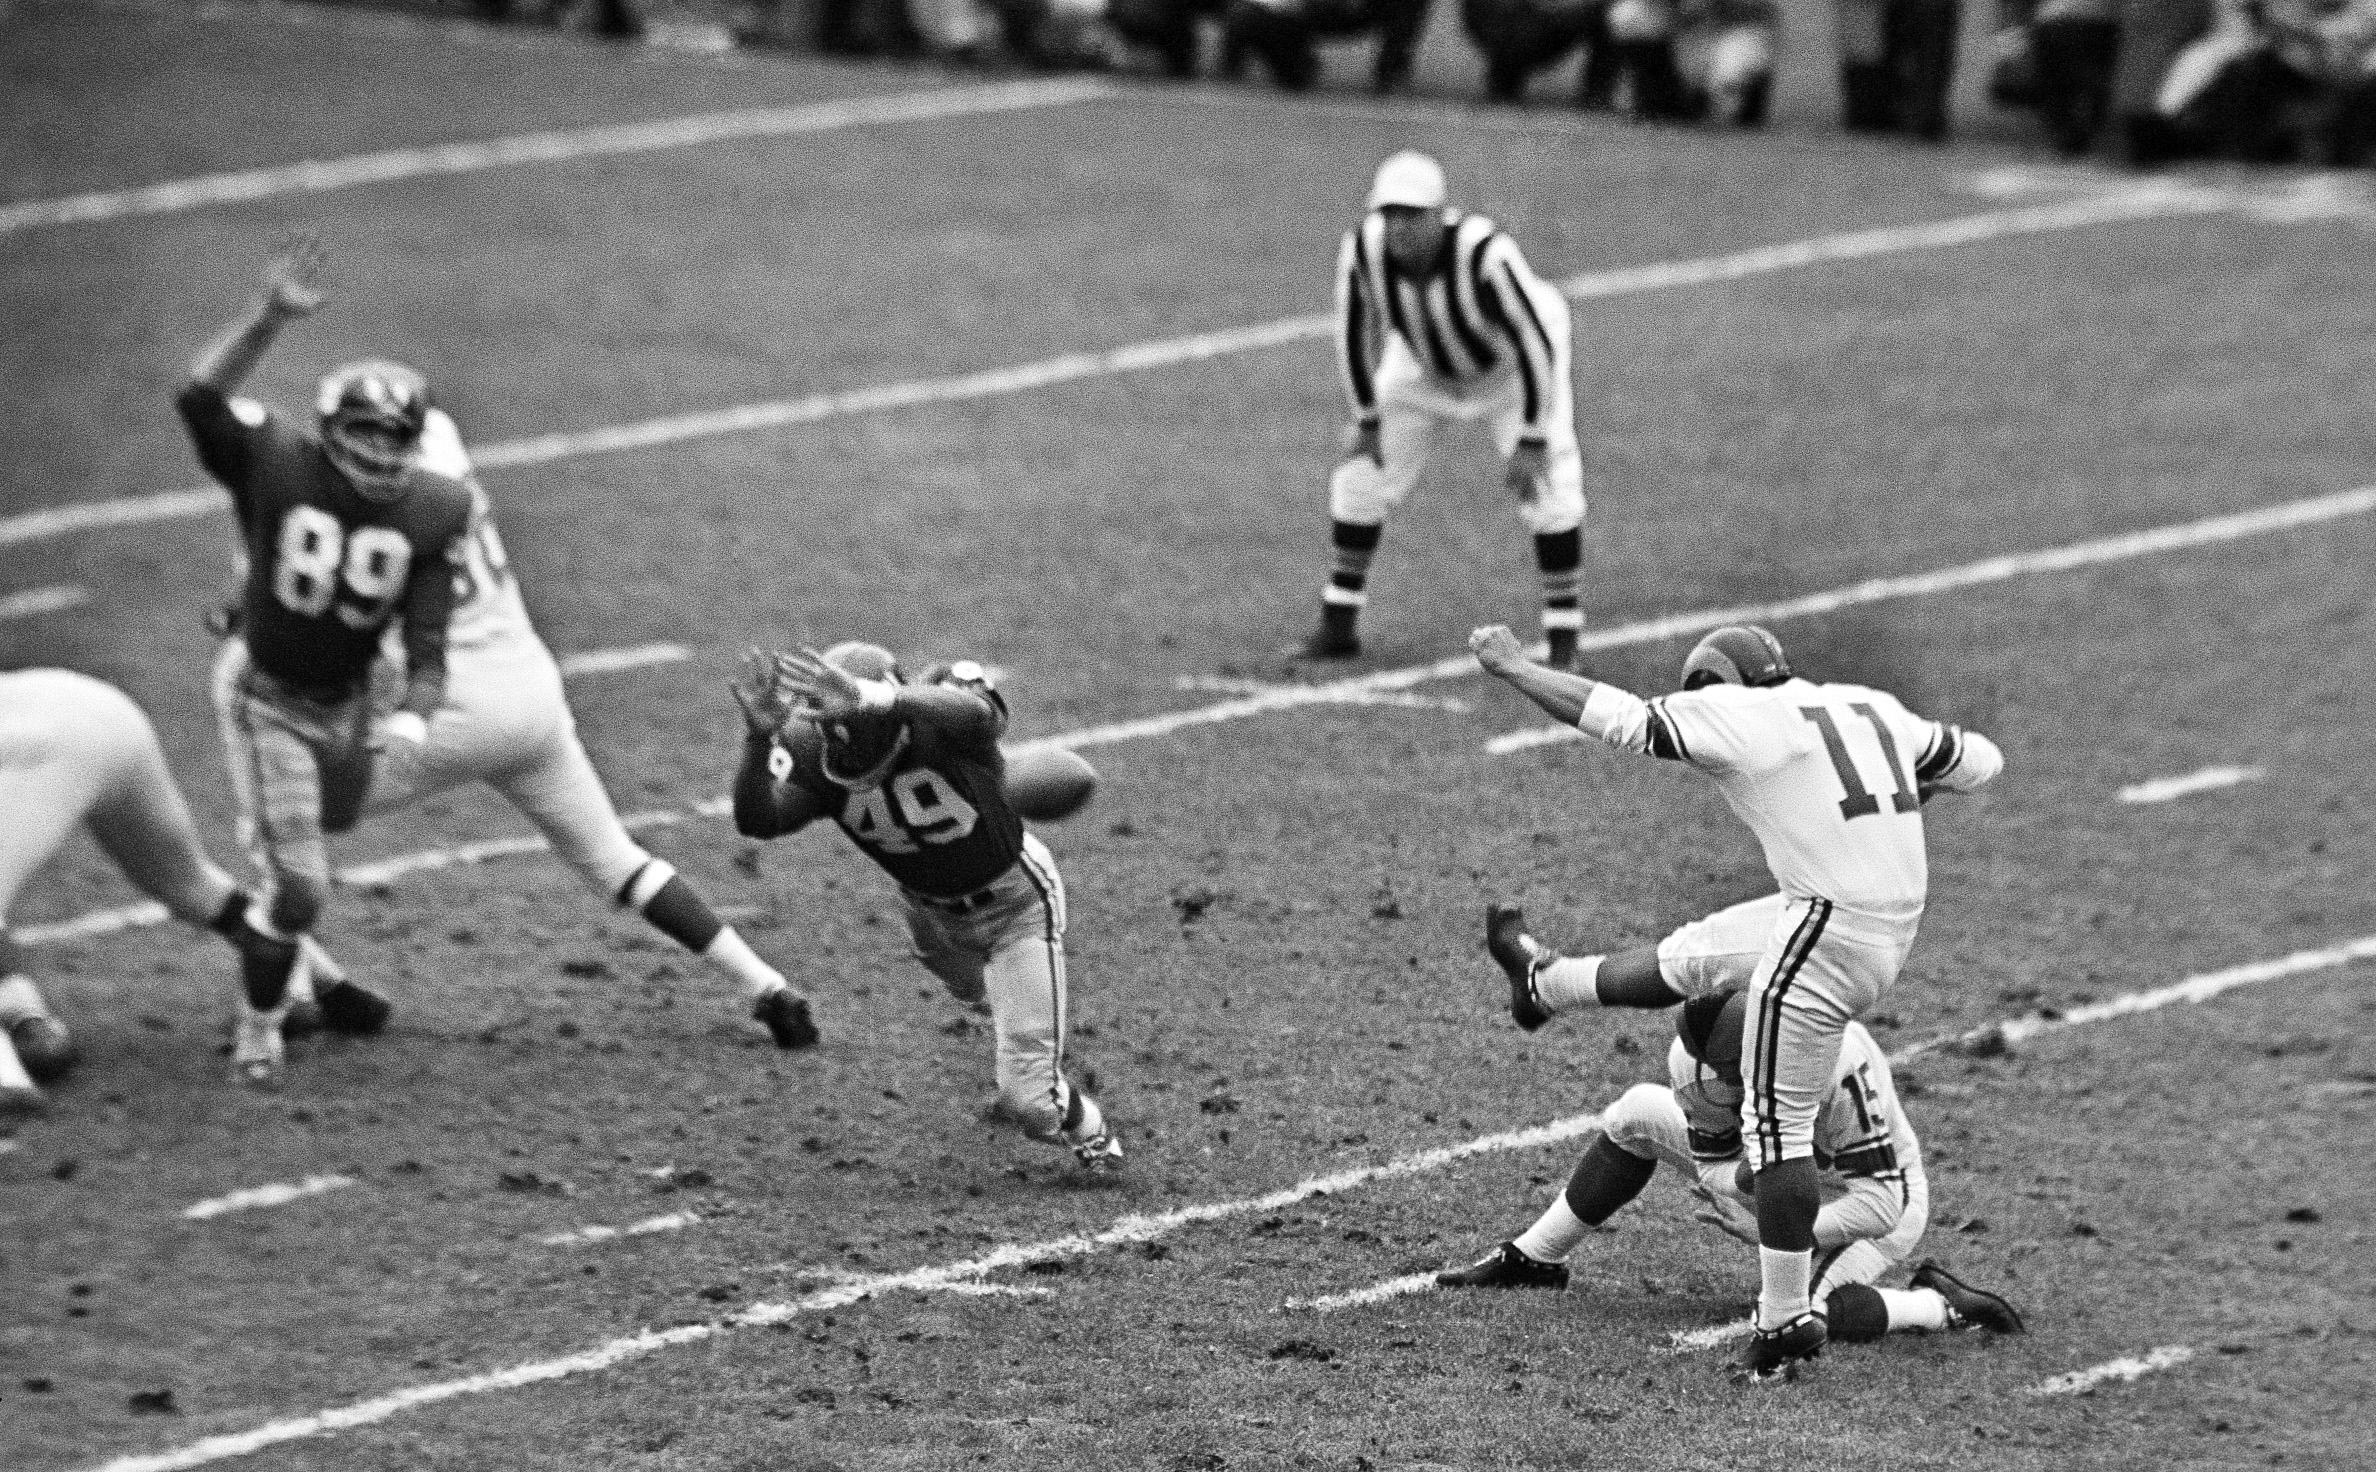 FILE -  In this Oct. 22, 1961, file photo, New York Giants halfback Erich Barnes (49) blocks field goal-attempt by Los Angeles Rams' Danny Villanueva (11) in the first period of NFL game in New York's Yankee Stadium. Villanueva, who was one of the NFL's f